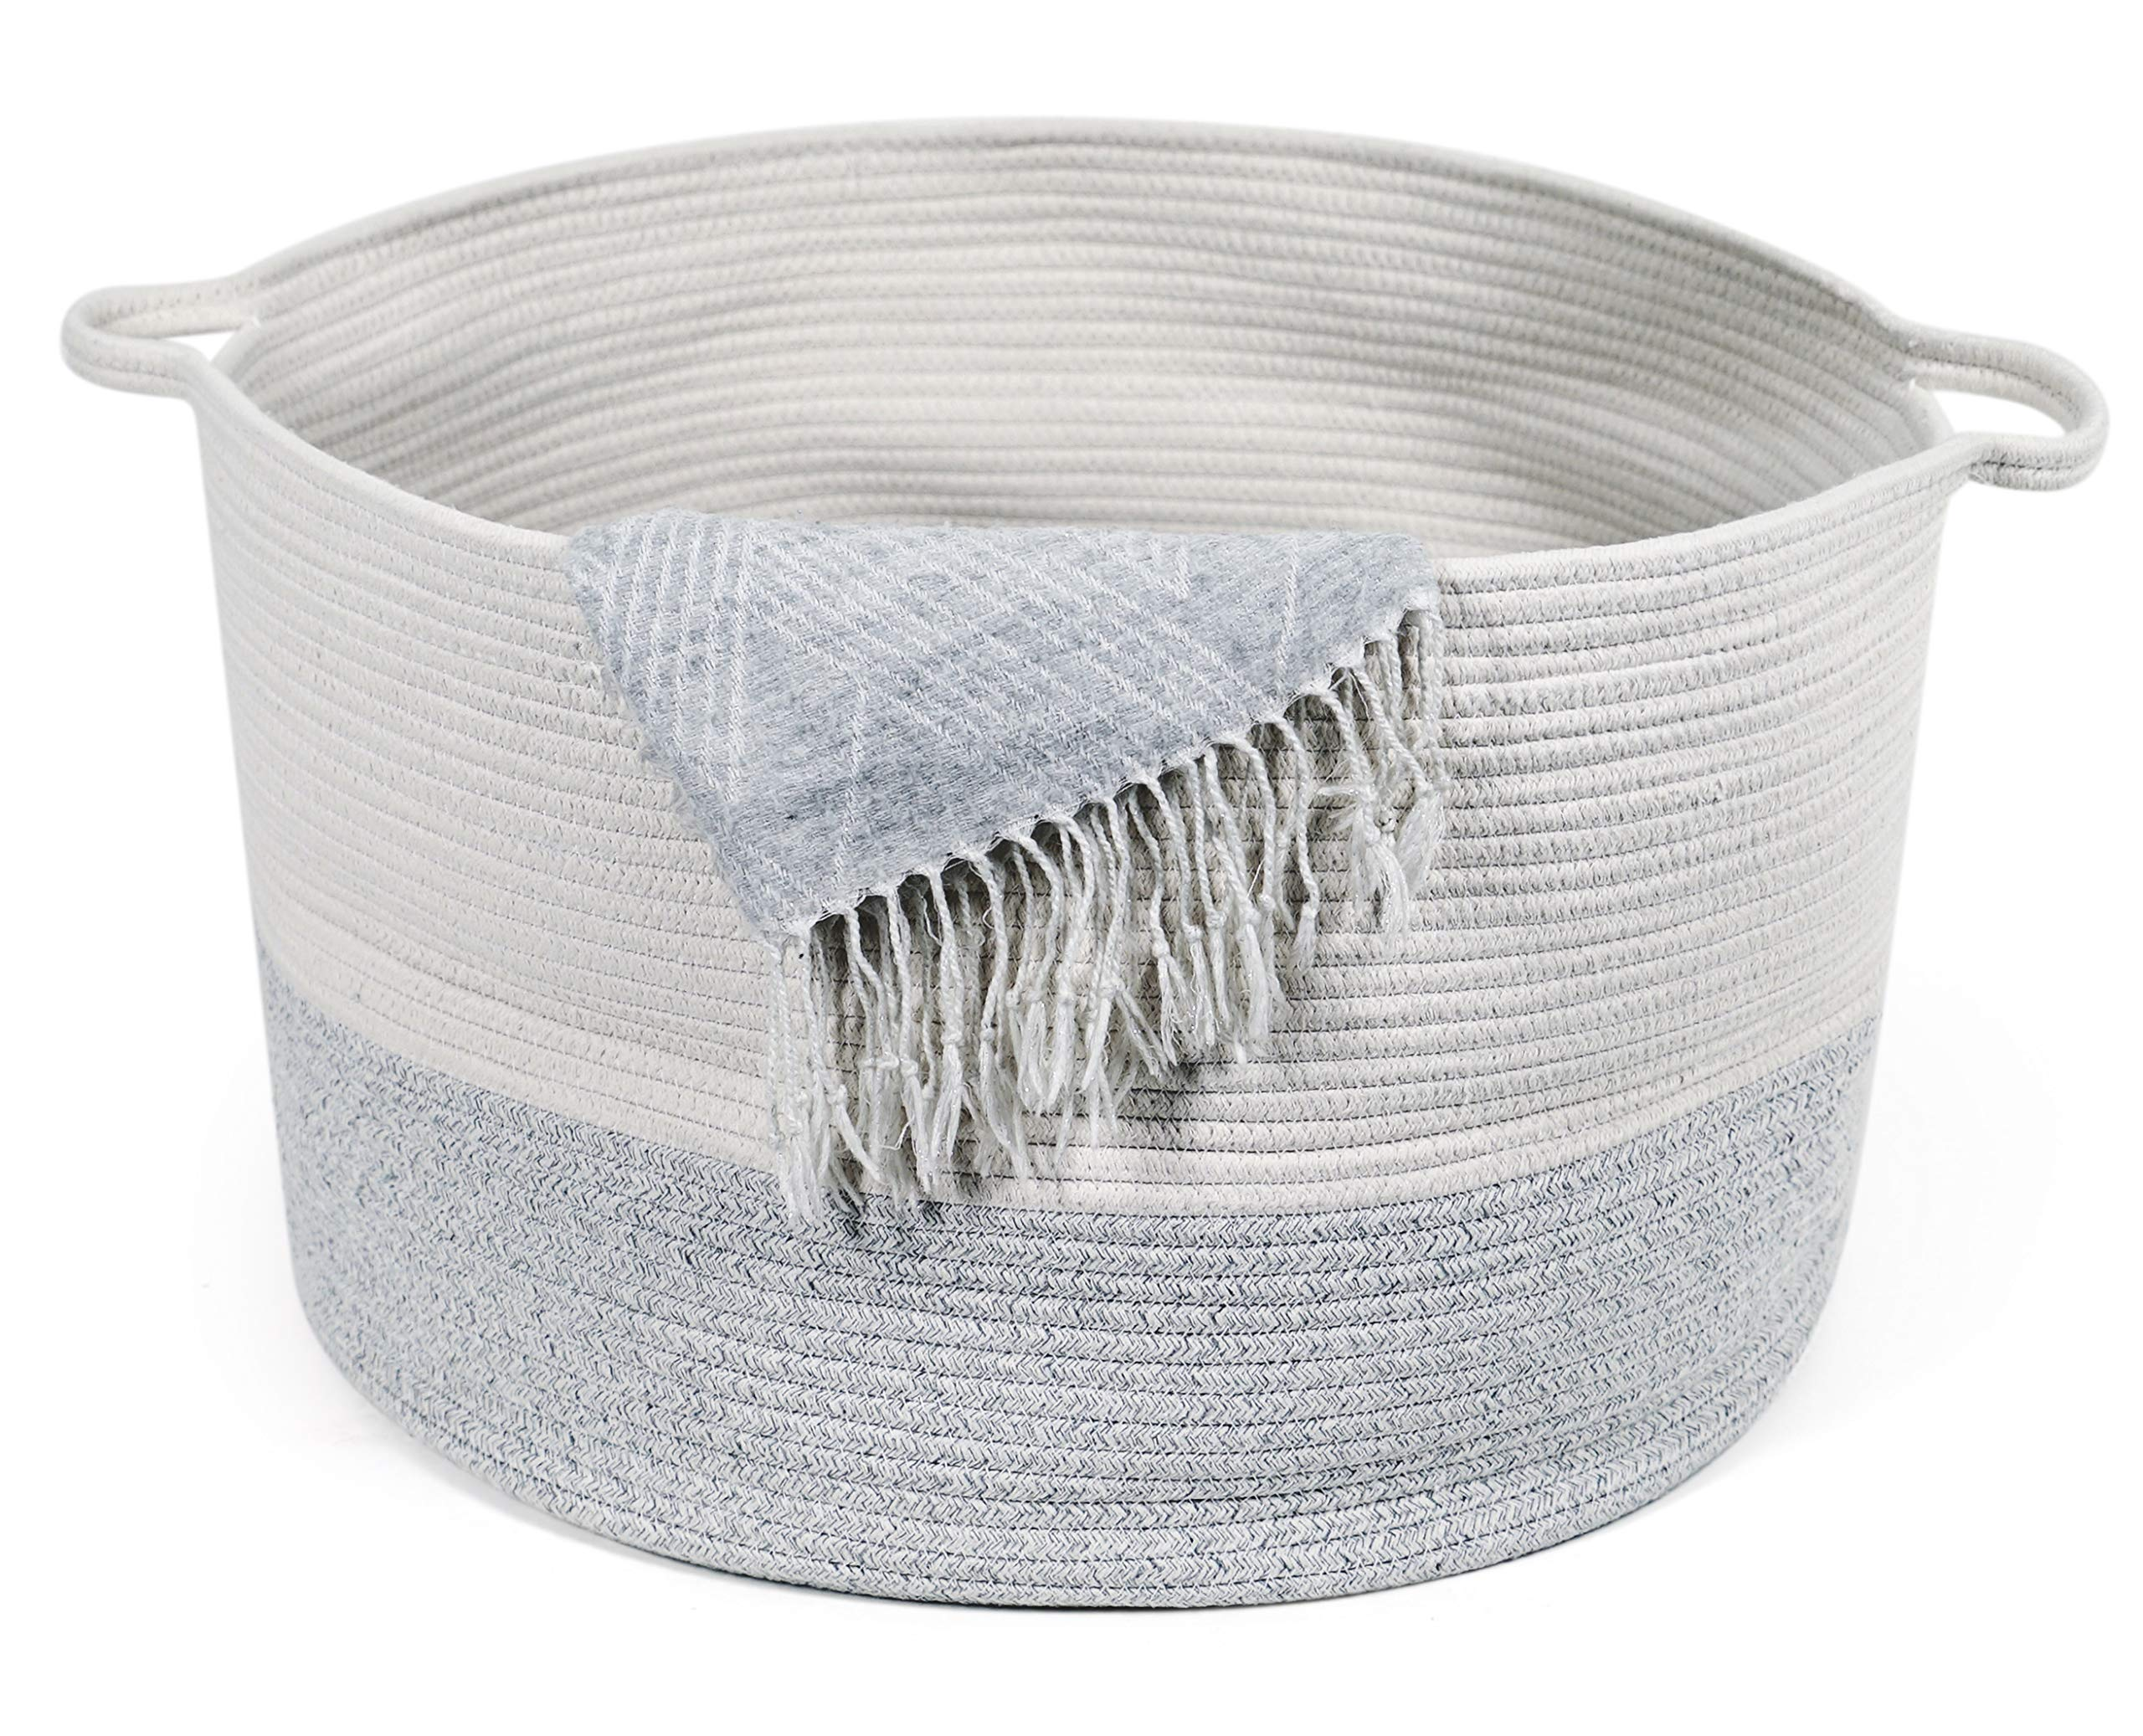 KWY Home XXXLarge Cotton Rope Woven Storage & Toy Basket - 22'' x 22'' x 14'' - Holds 4 Blankets, 20 Towels, 5 Pillows!! - Perfect for Baby Nursery, Laundry Hamper or Living Room with Handles by KWY Home